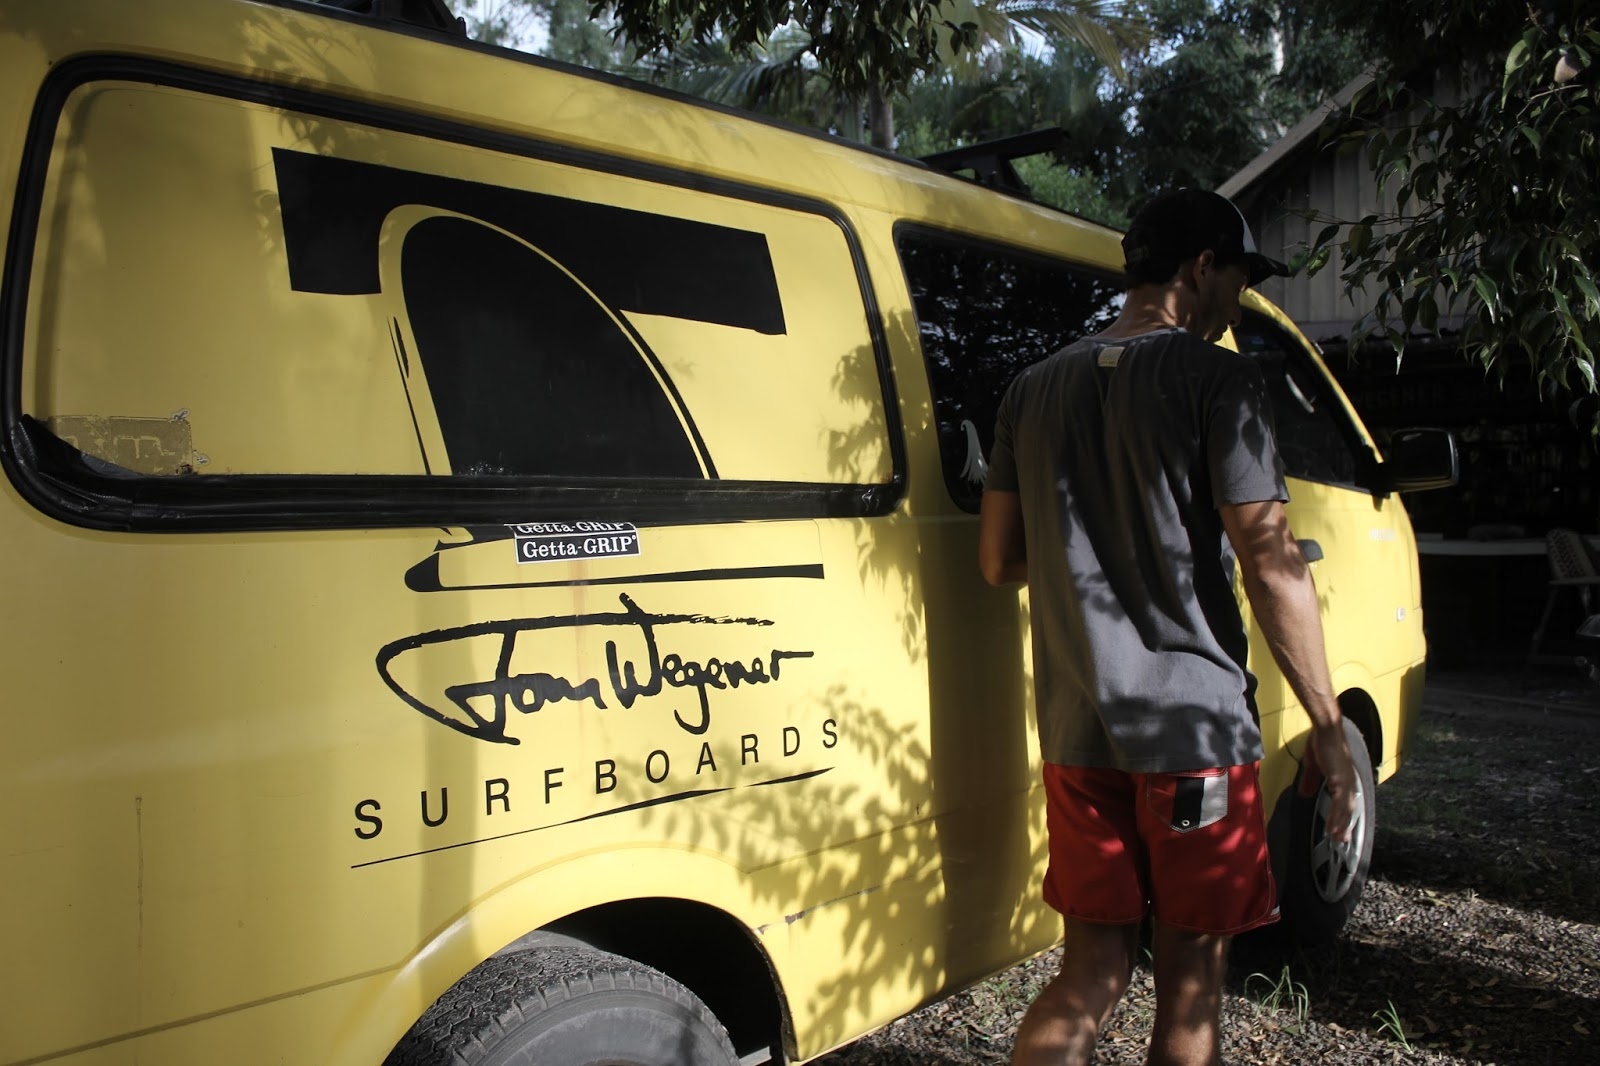 16-03-2016-australia-siebert-surfboards-02